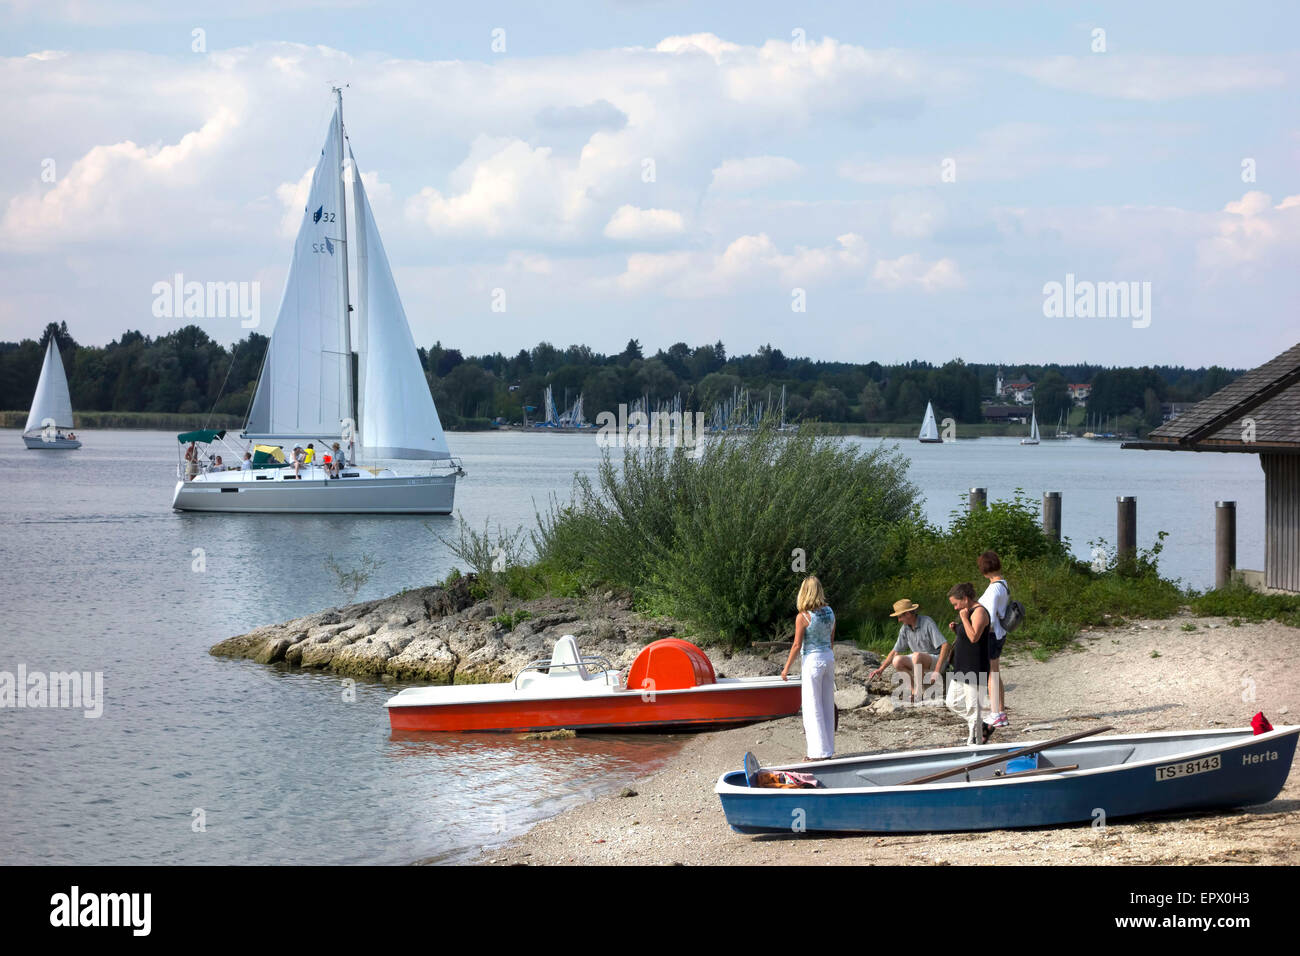 People on beach with sail boat passing bye, Herreninsel Chiemsee Upper Bavaria Germany - Stock Image